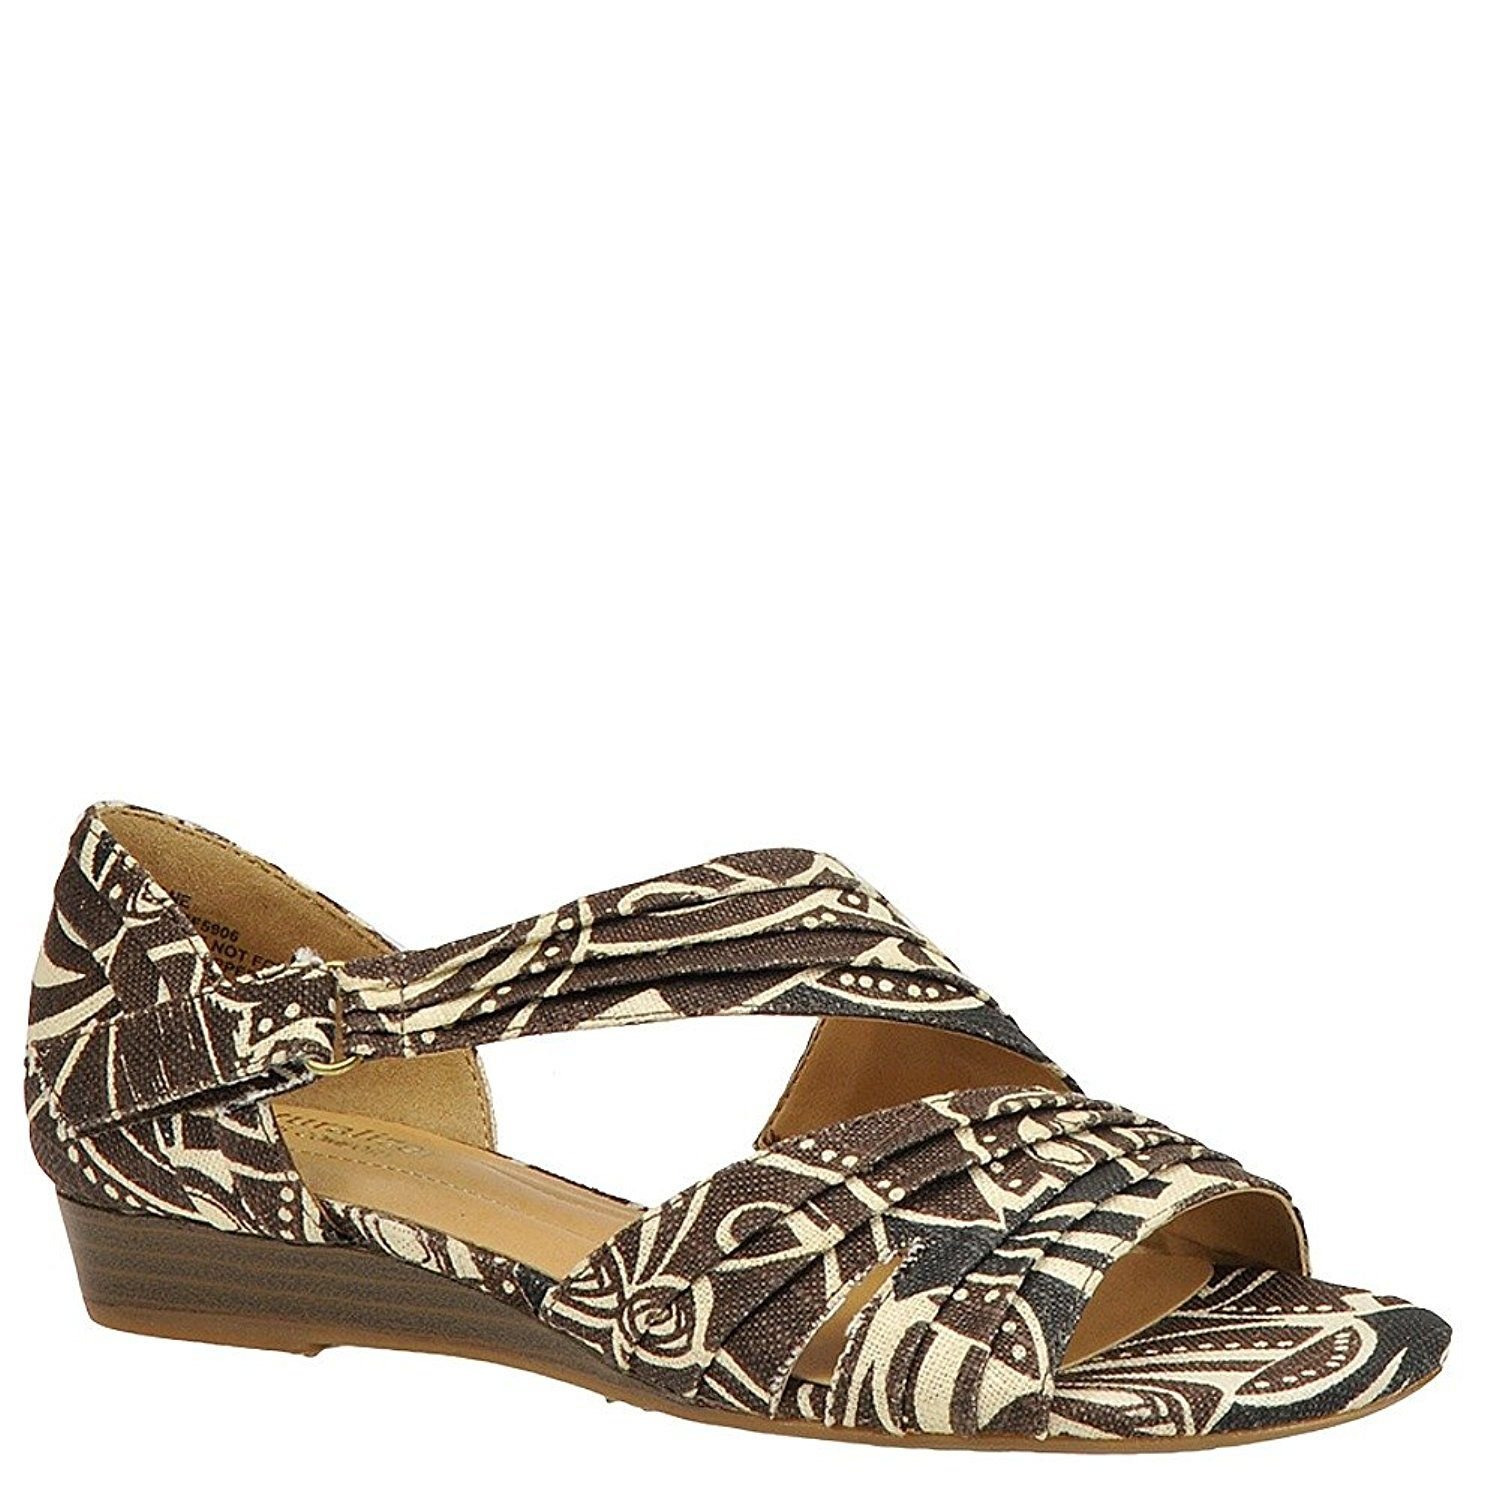 abc5f109cb84a Naturalizer Women s Jane Flat    Find out more details by clicking the  image   Naturalizer sandals